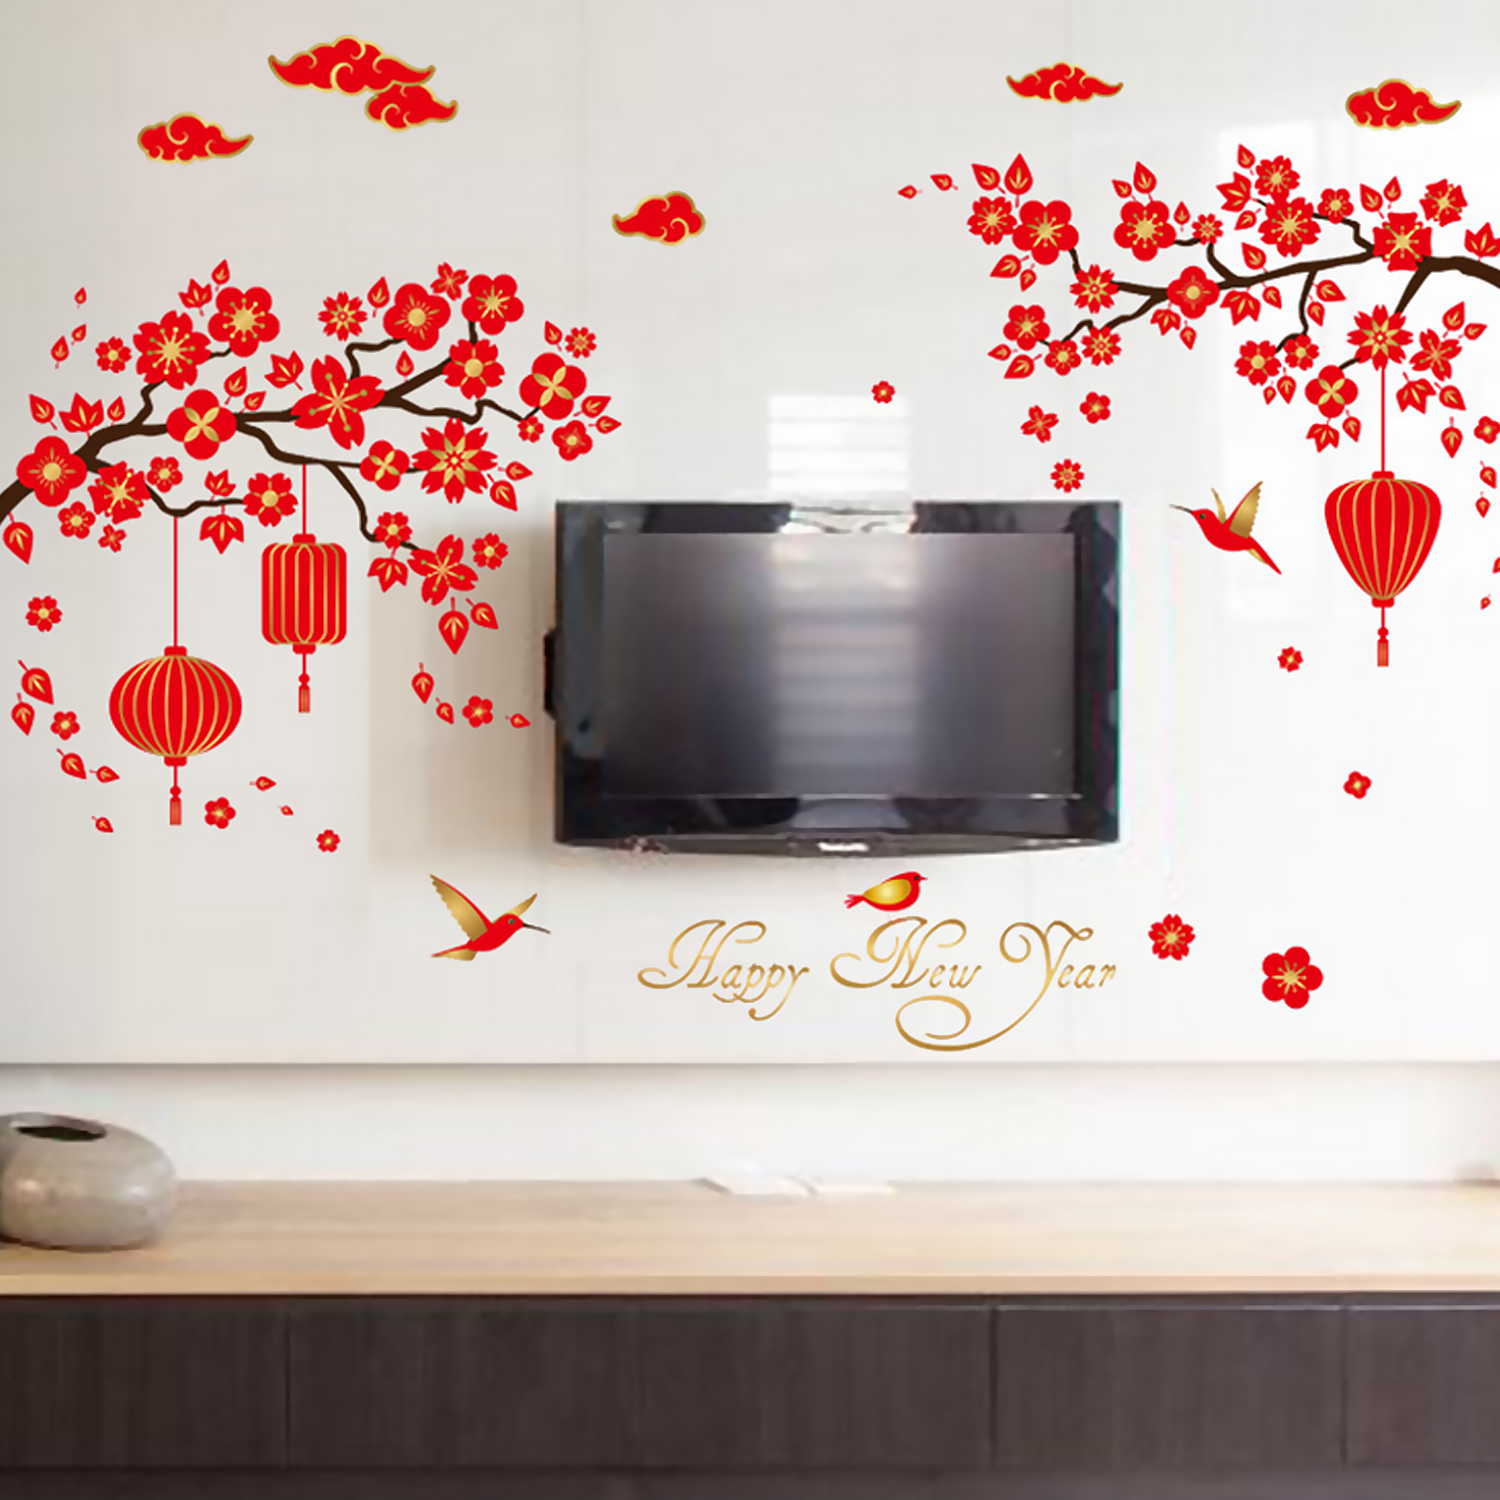 DIY Wall Stickers Removable Red Lanterns Lunar New Year Decorative Art Decals Wallpaper For Home Living Room Decors